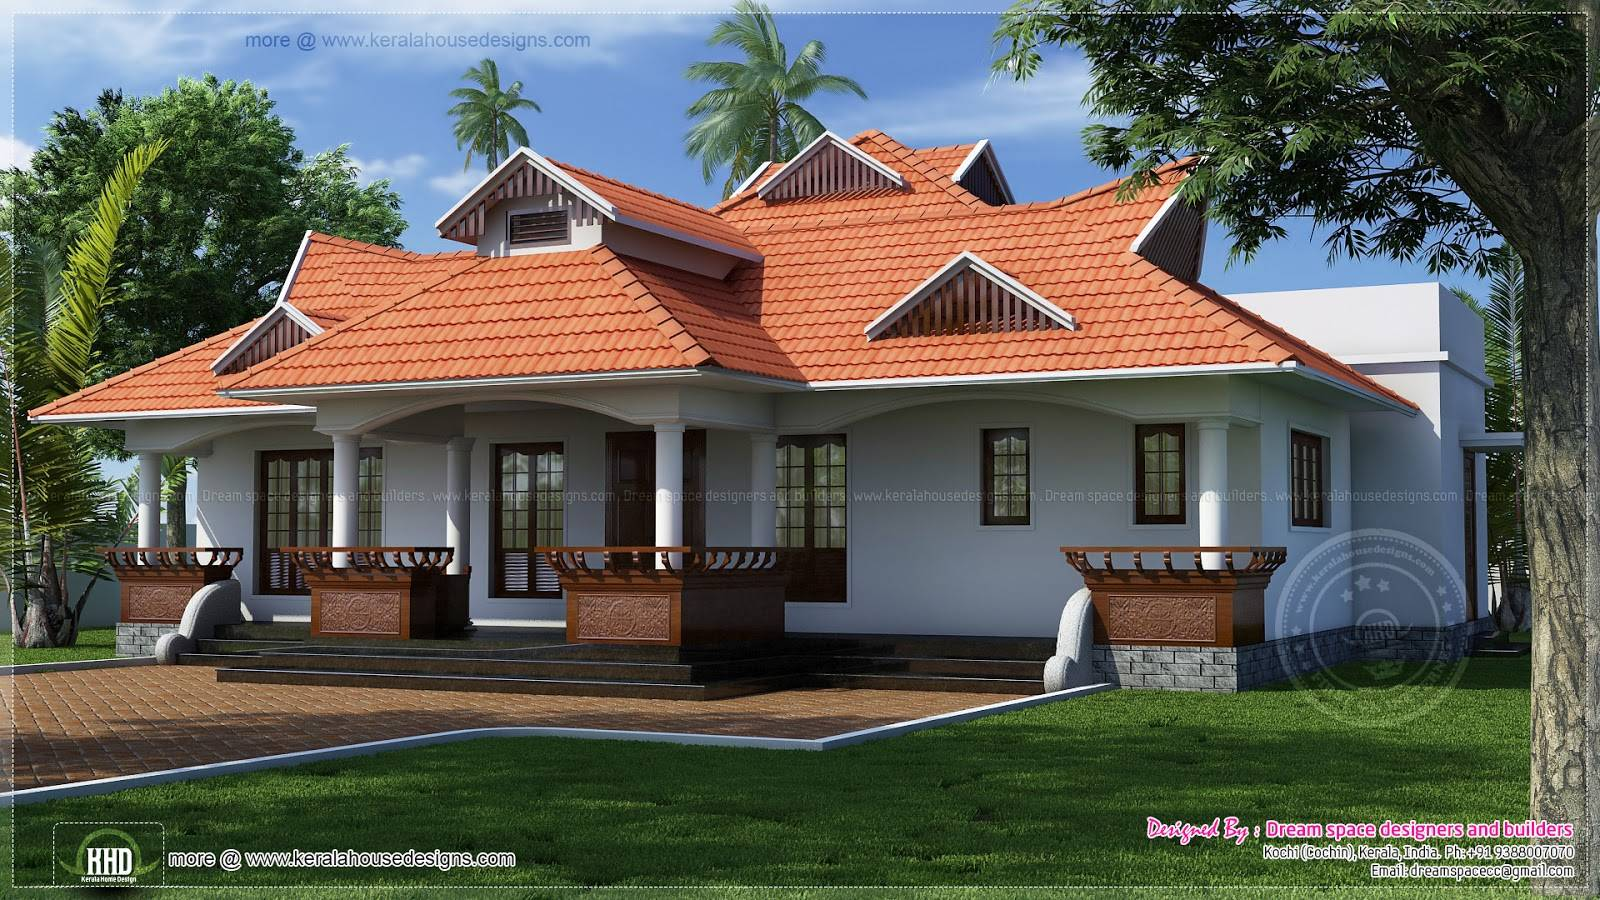 old house designs in kerala house interior